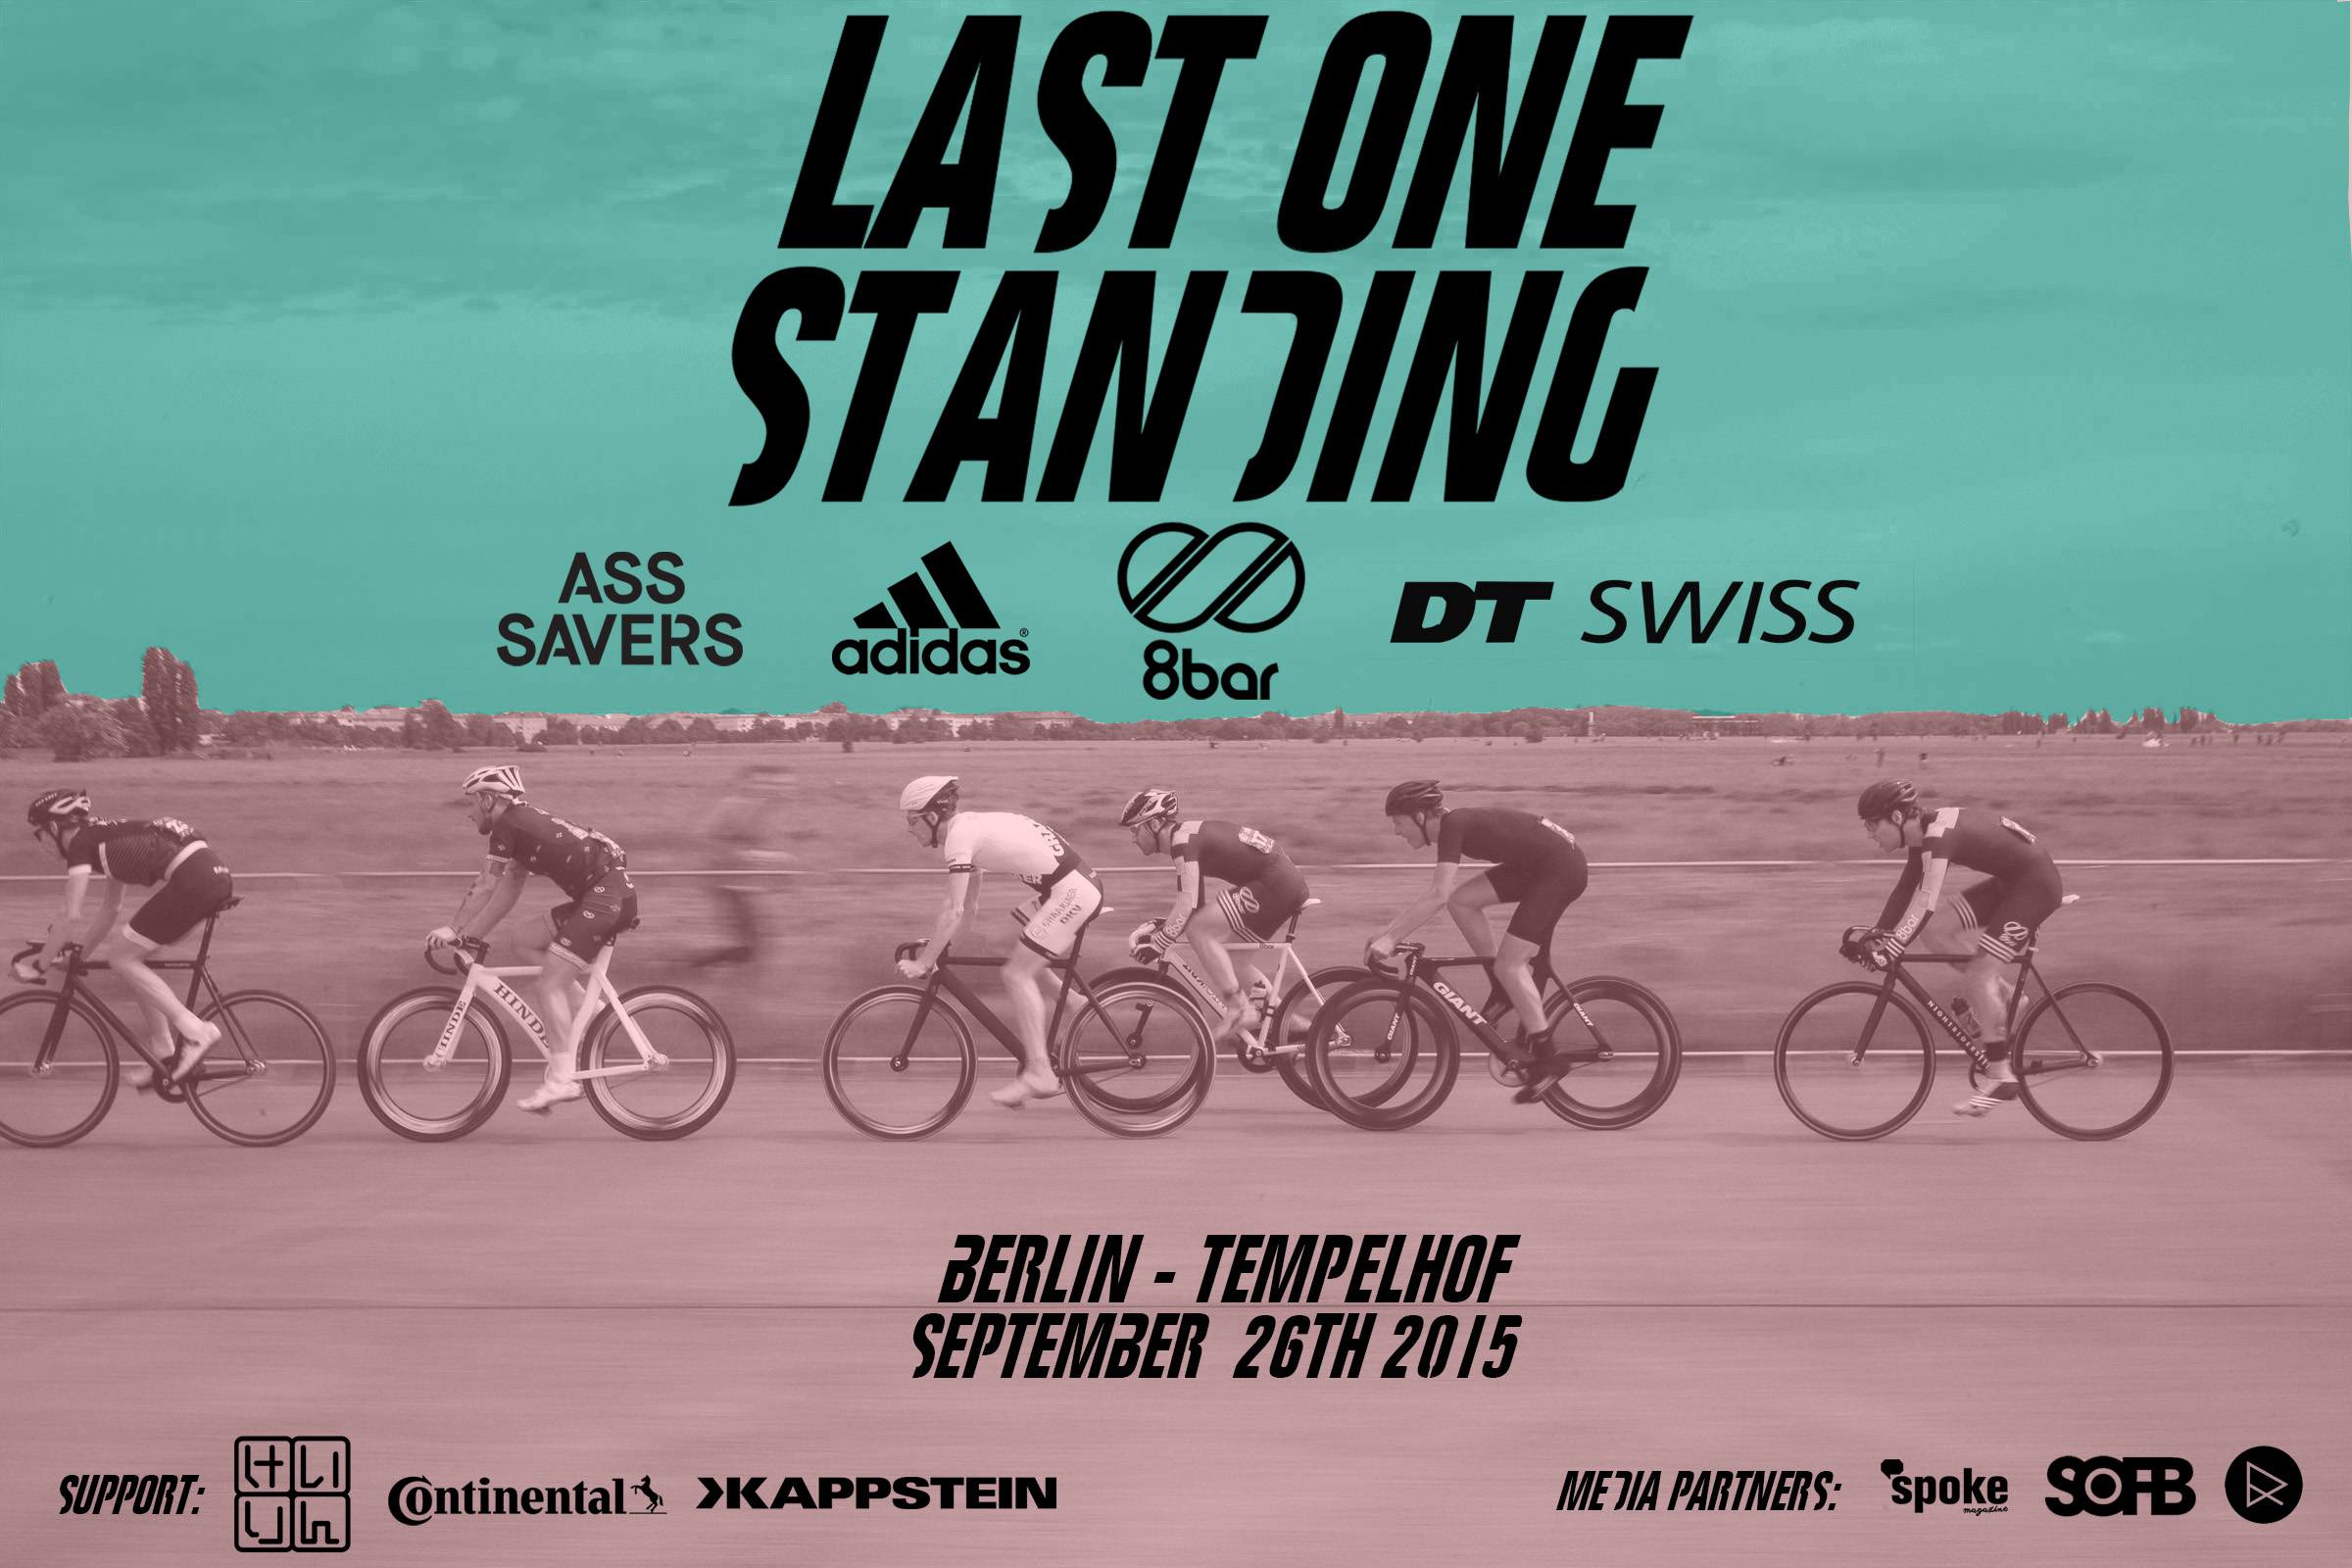 last one standing flyer - 8bar - Last One Standing - Berlin